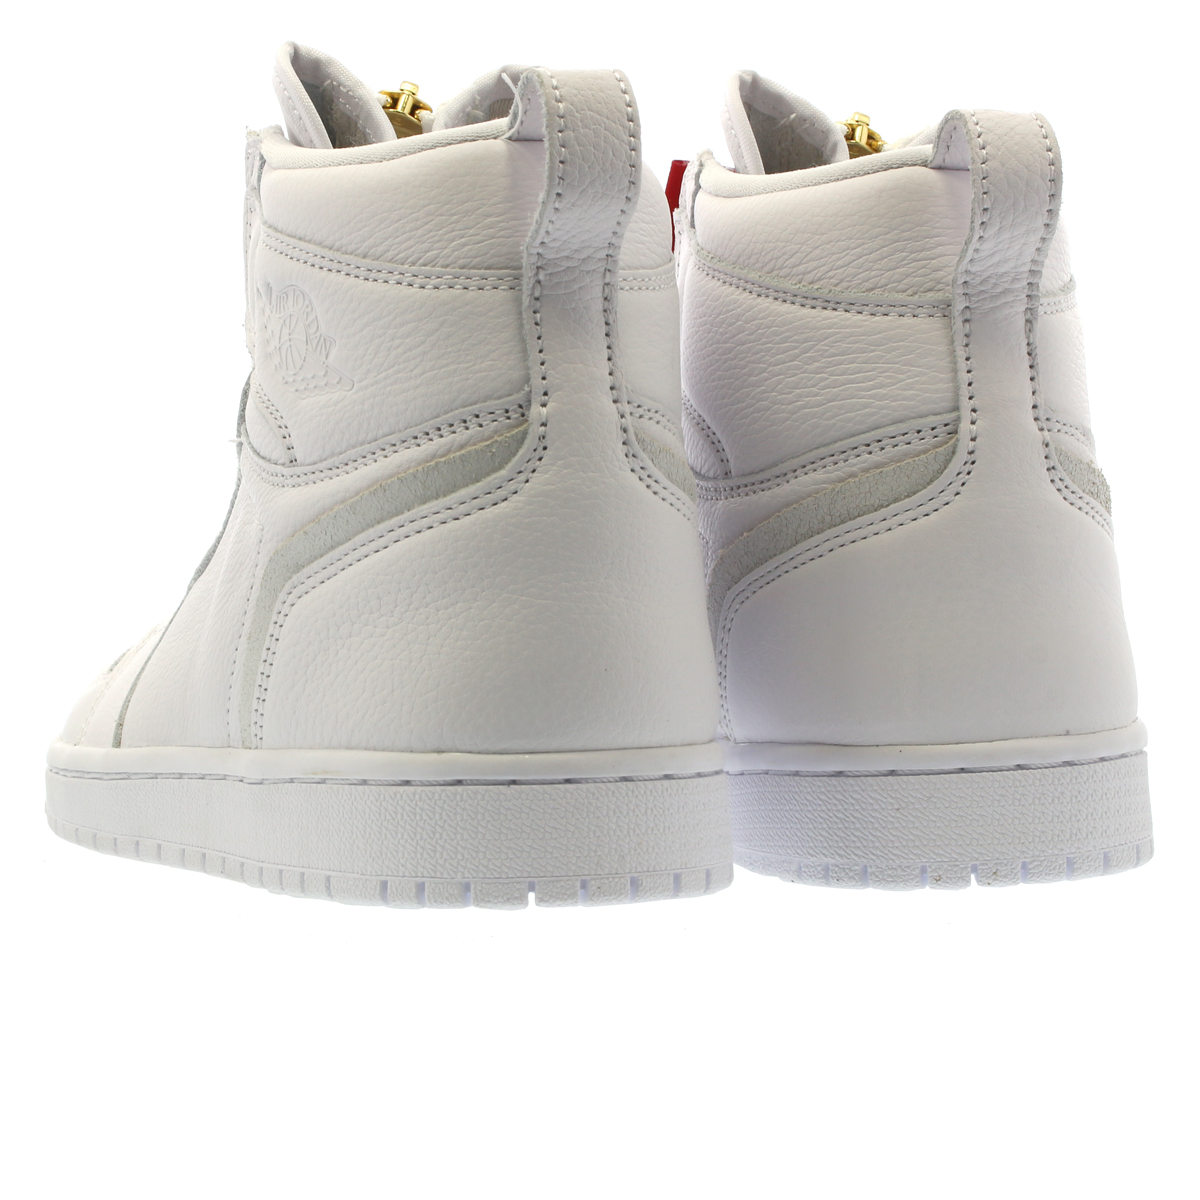 low priced c97d1 a9f0d NIKE WMNS AIR JORDAN 1 HIGH ZIP Nike women Air Jordan 1 high zip WHITE UNIVERSITY  RED aq3742-116-l